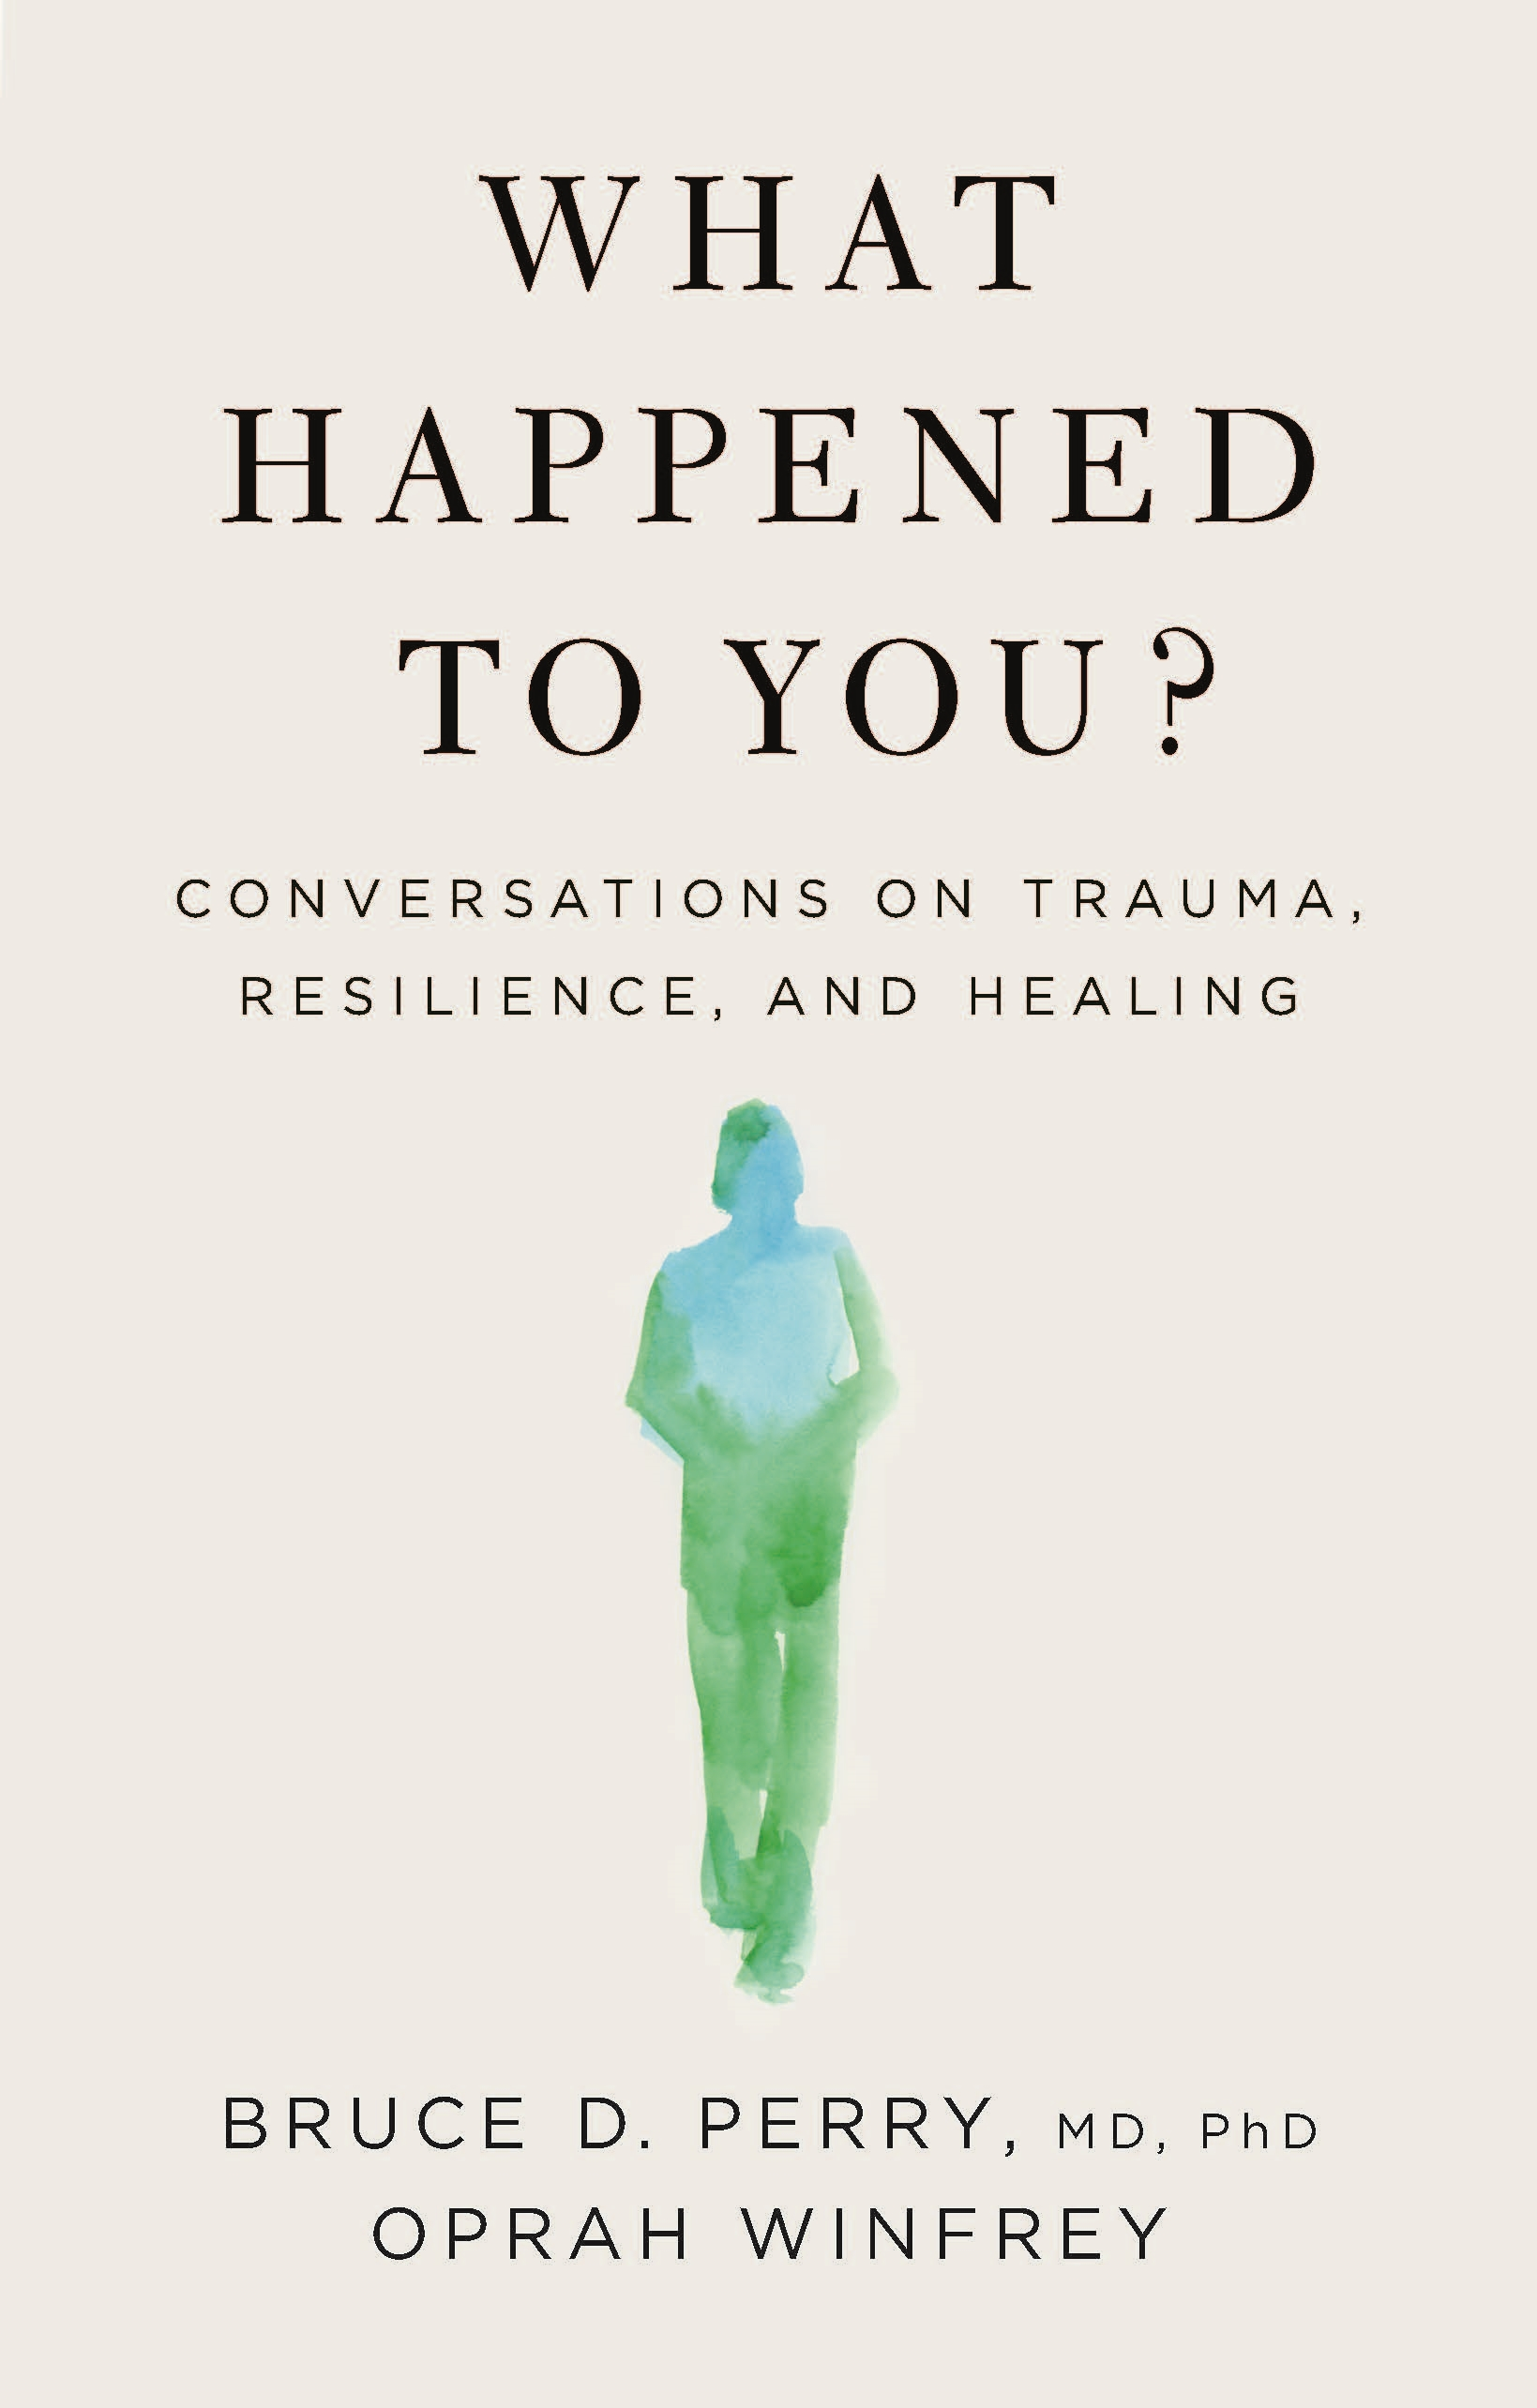 What Happened to You? Conversations on Trauma, Resilience, and Healing